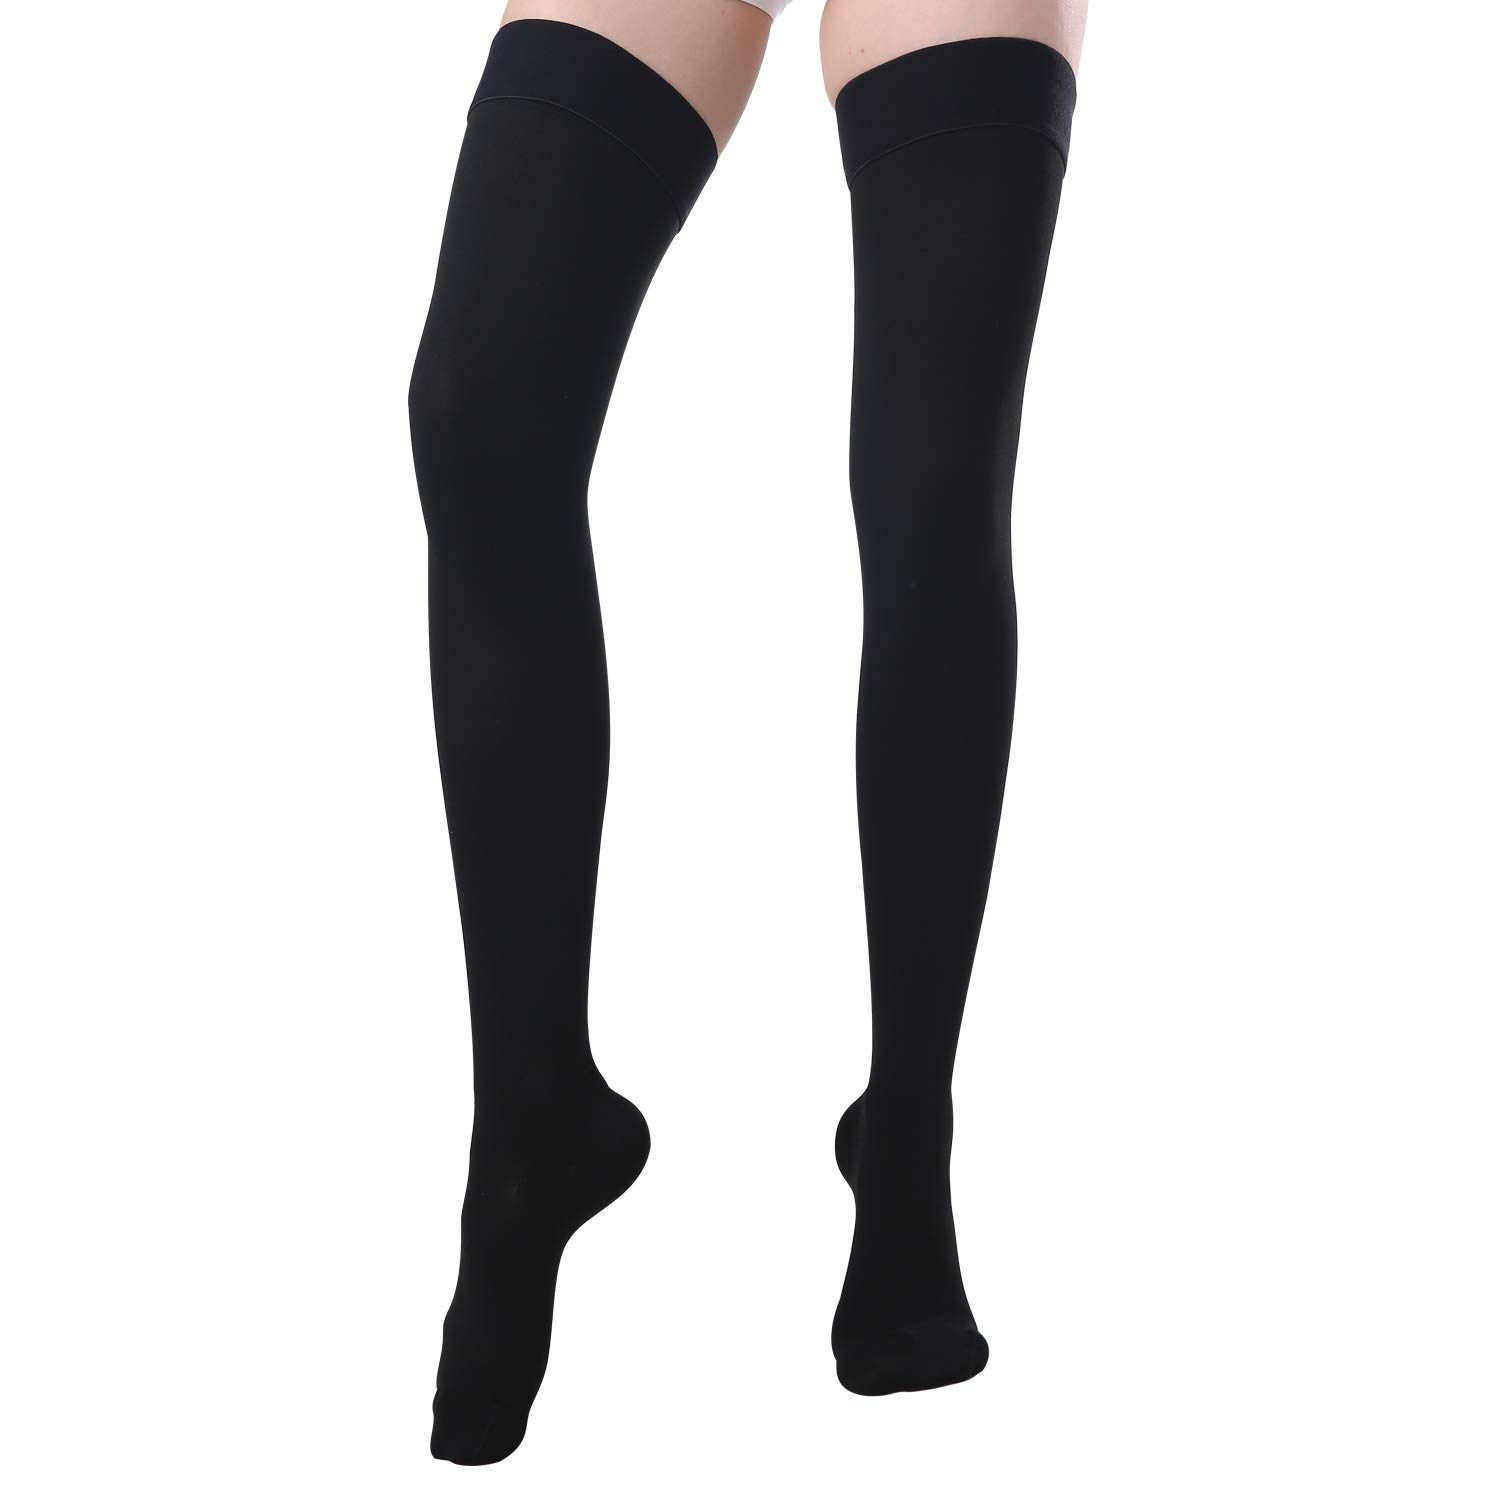 20-30mmHg KEWIAR Womens Compression Socks Medical Compression Stockings Support Hose for Varicose Veins,Edema